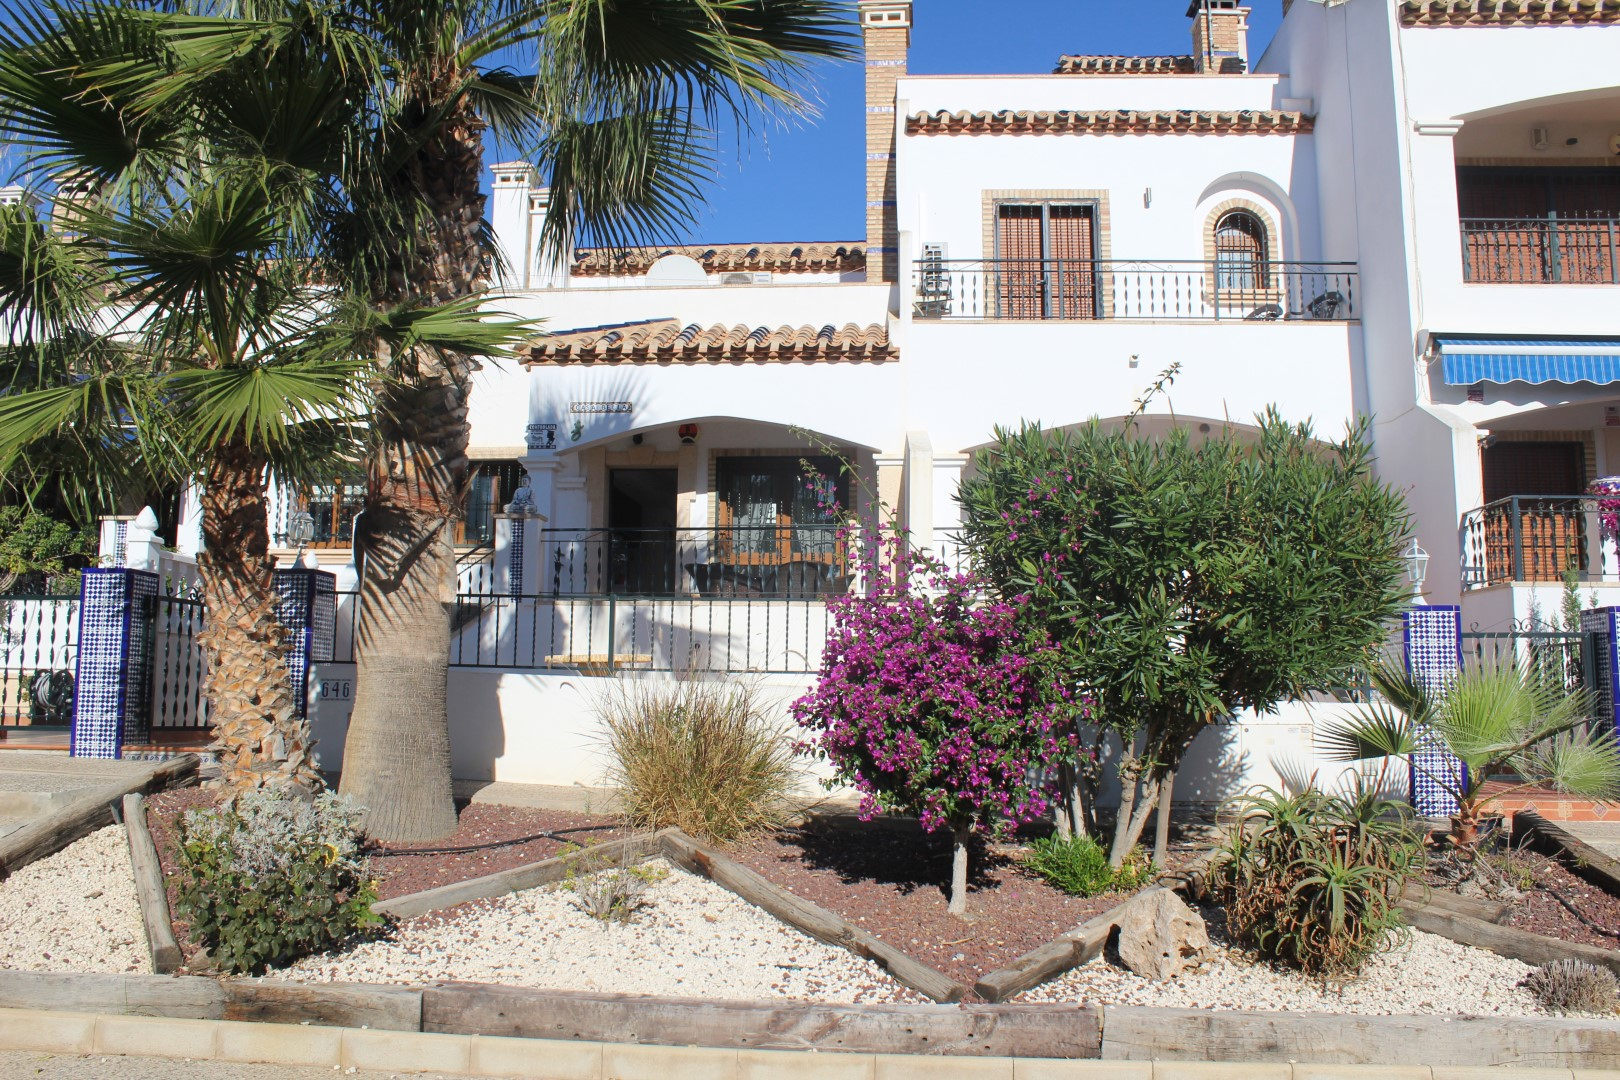 3 bedrooms, 2 bathrooms, townhouse with open fireplace in Villamartin